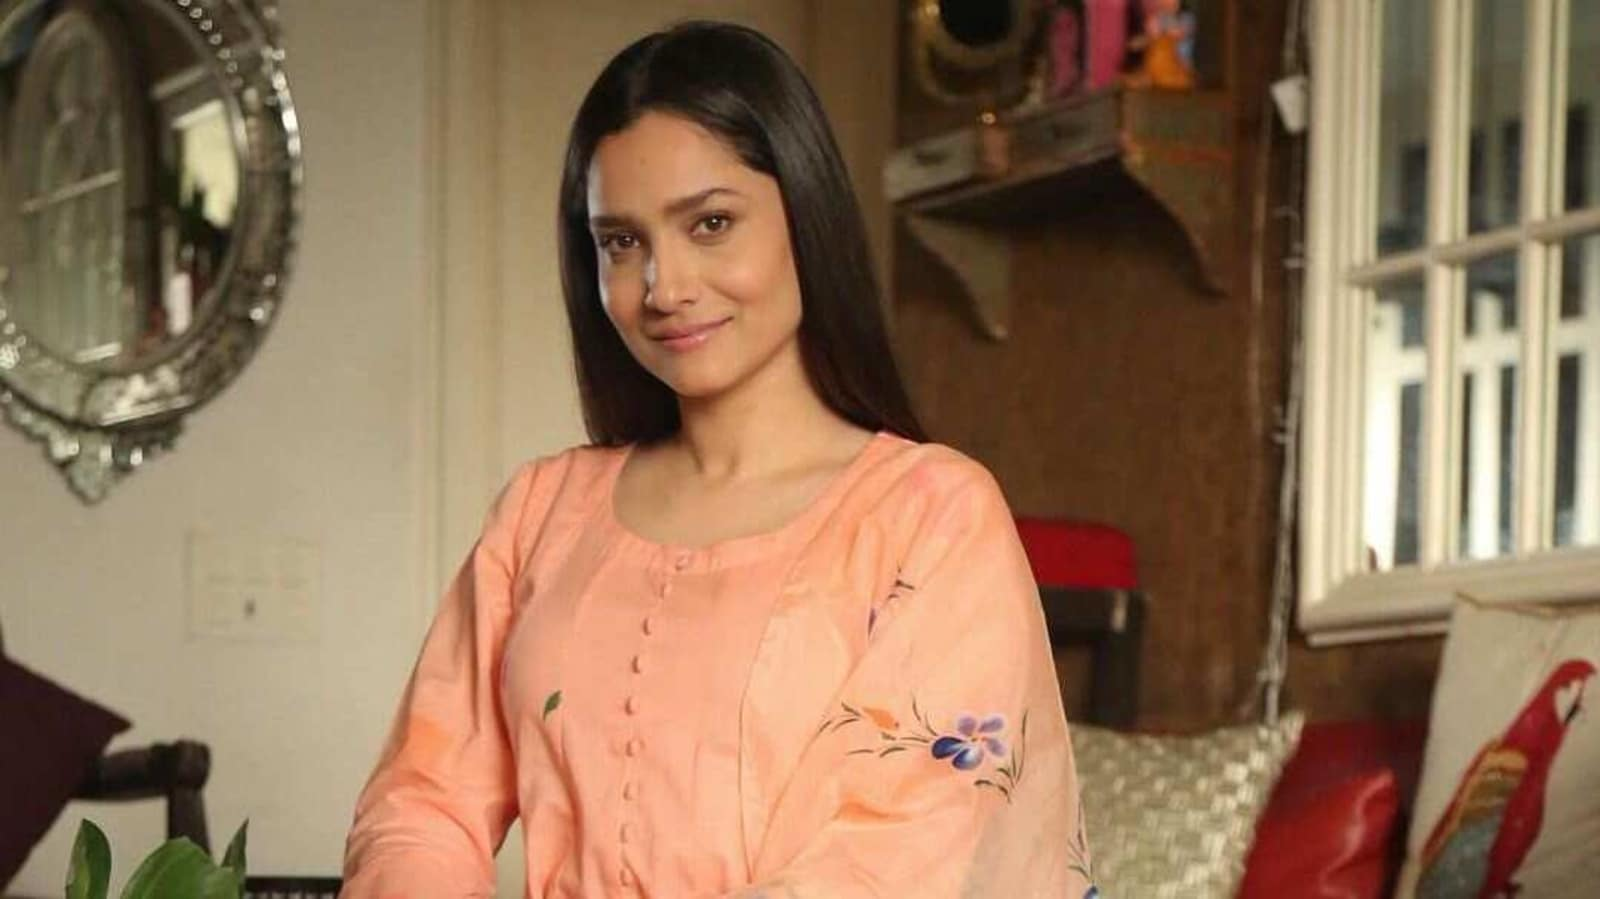 Ankita Lokhande talks about going through depression, says she was in a 'very bad state'